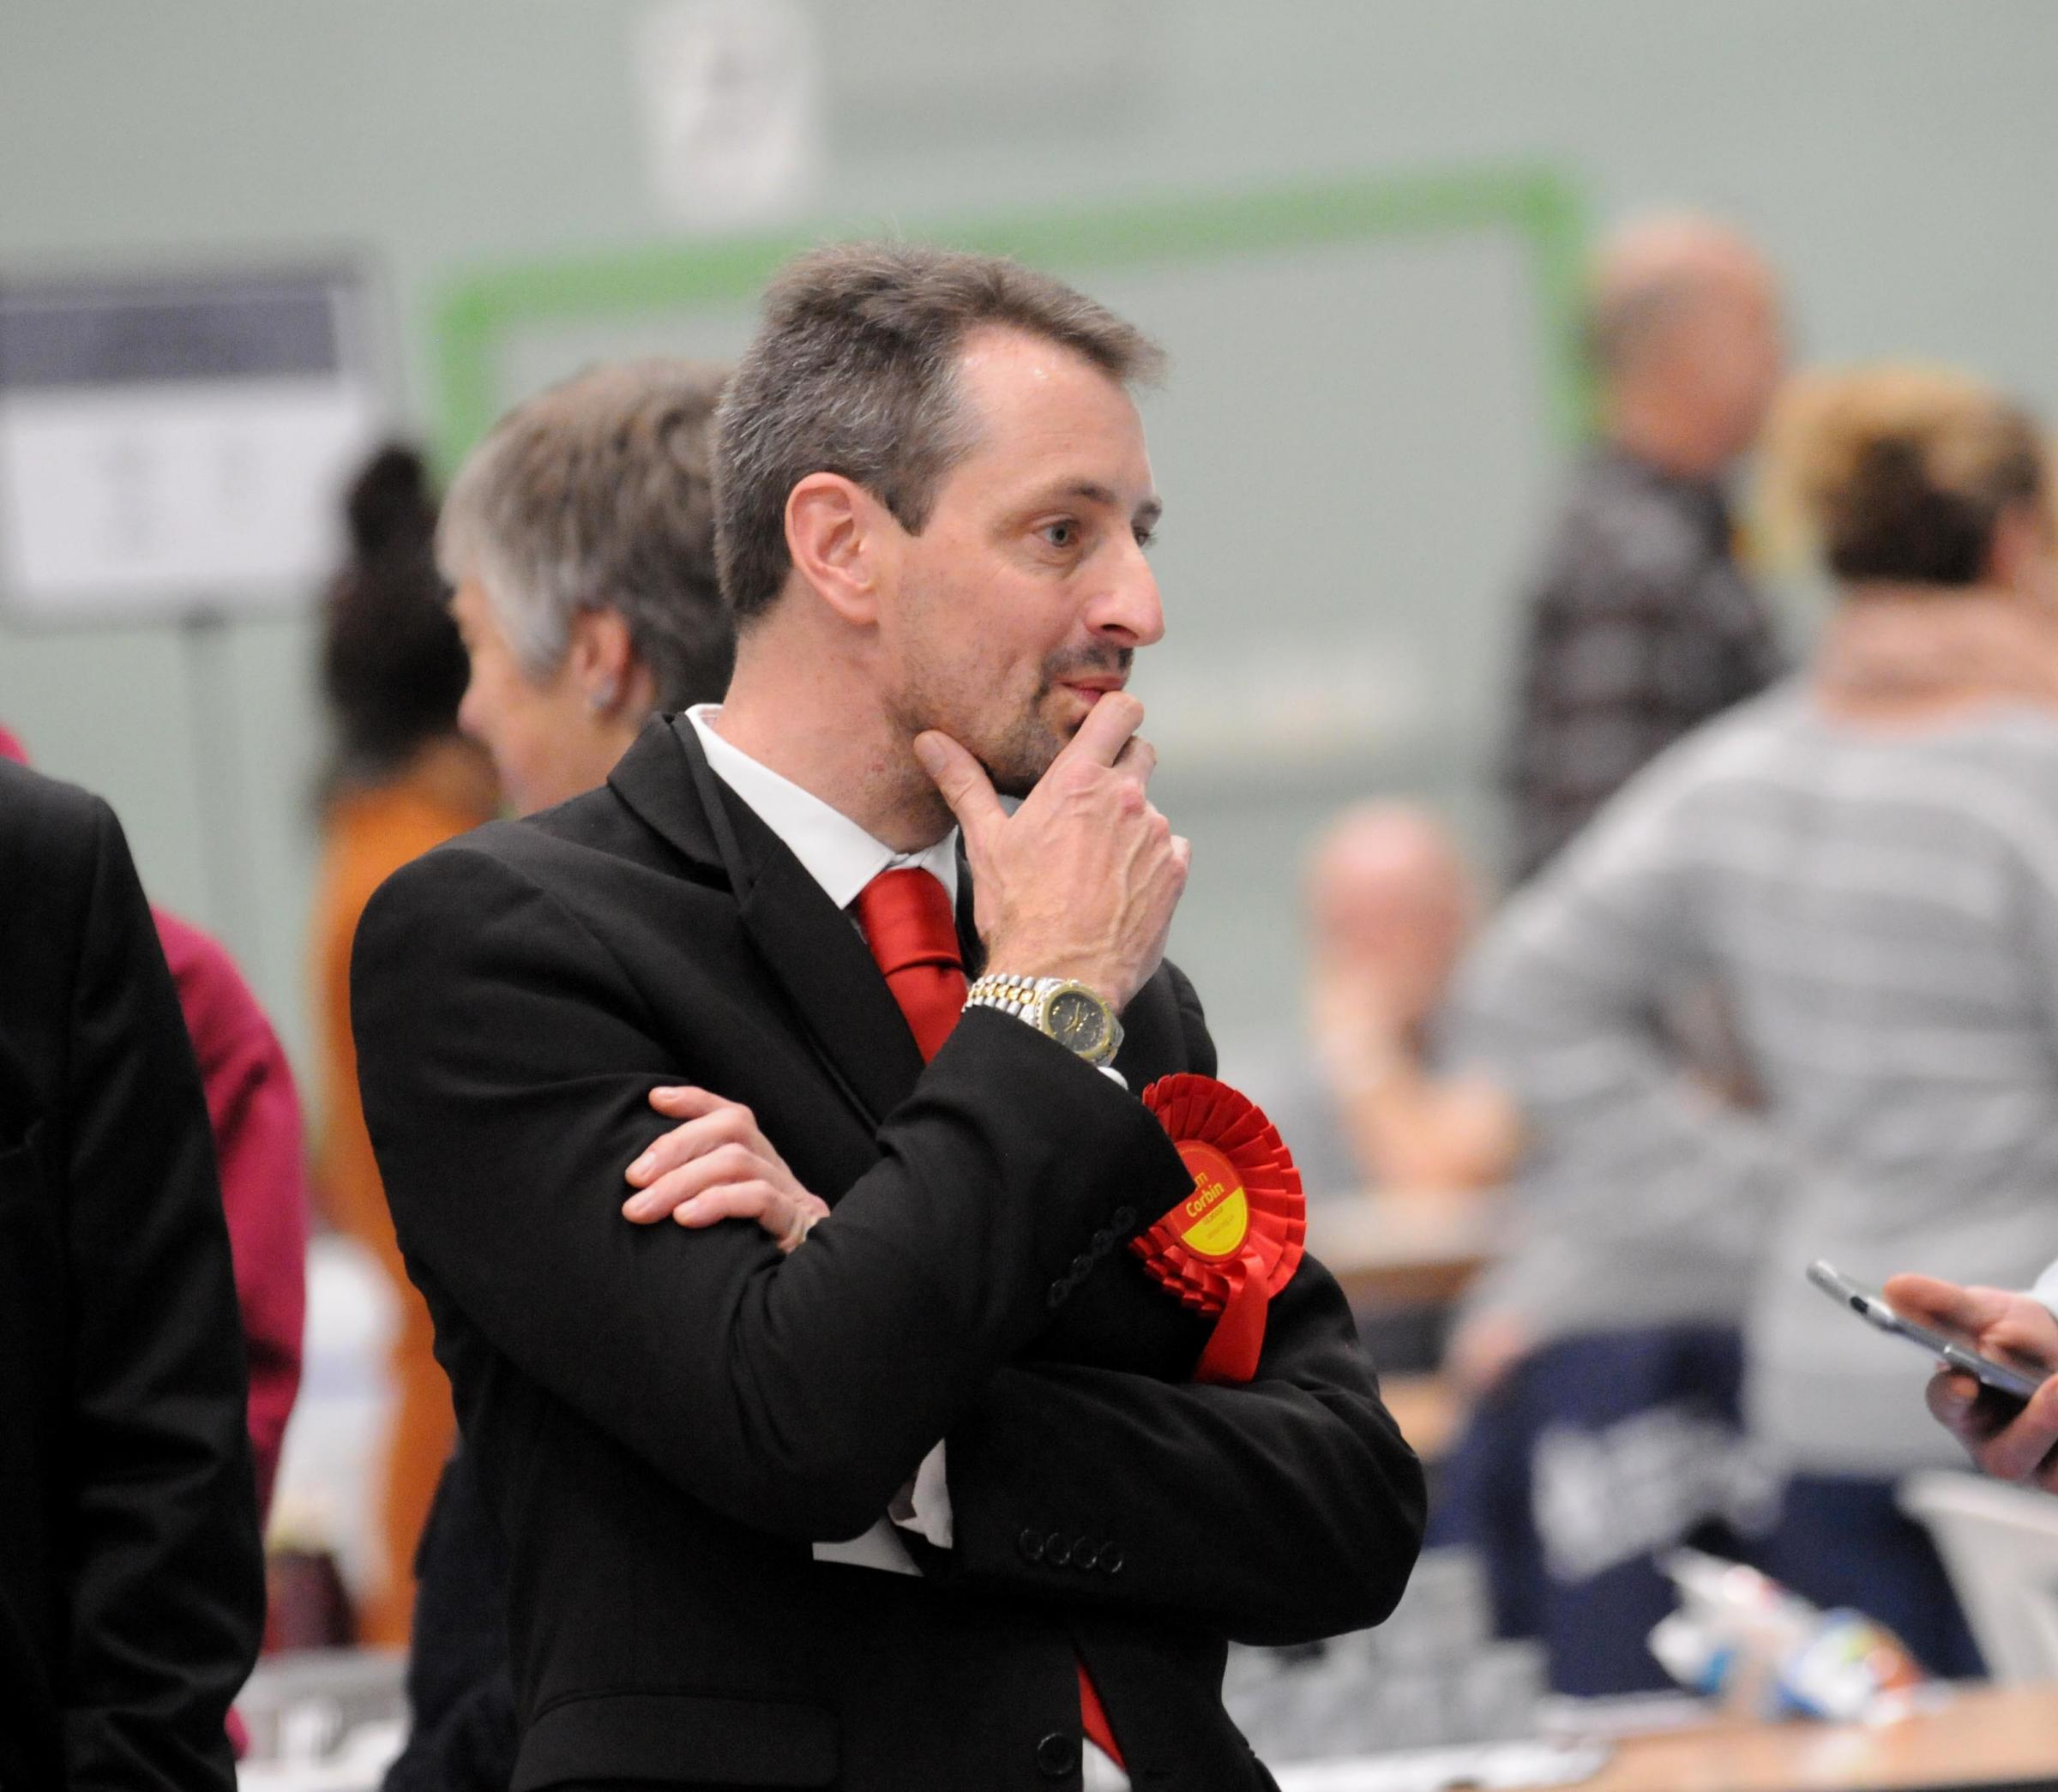 Labour candidate Tom Corbin..Election count for Salisbury Constituency and Devizes Constituency, held at Five Rivers Leisure Centre in Salisbury..General Election 2019 DC9356P104 Picture by Tom Gregory...